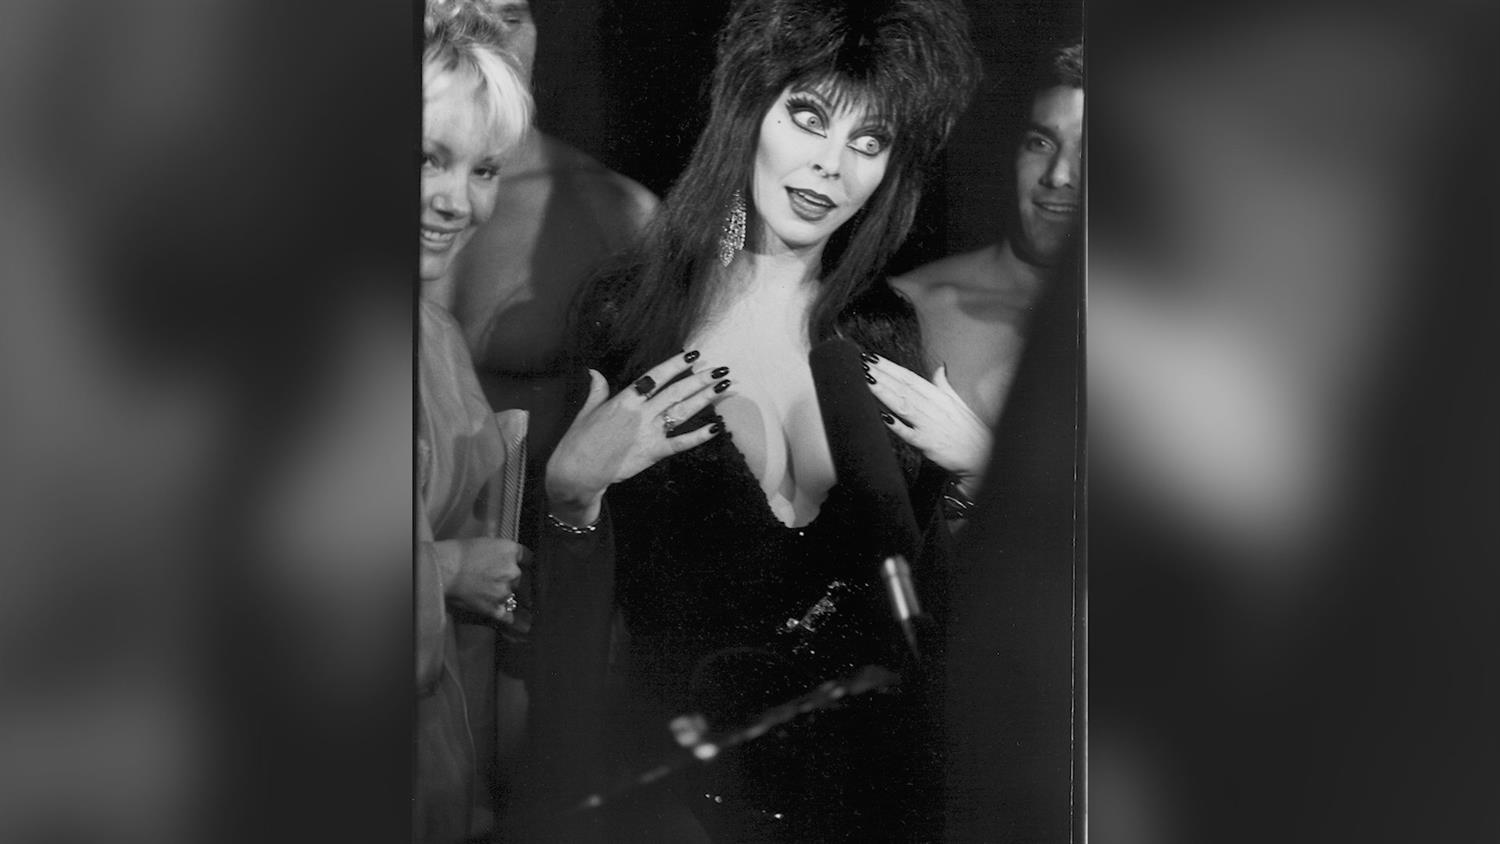 Elvira Takes Us Backstage At Her Halloween Show